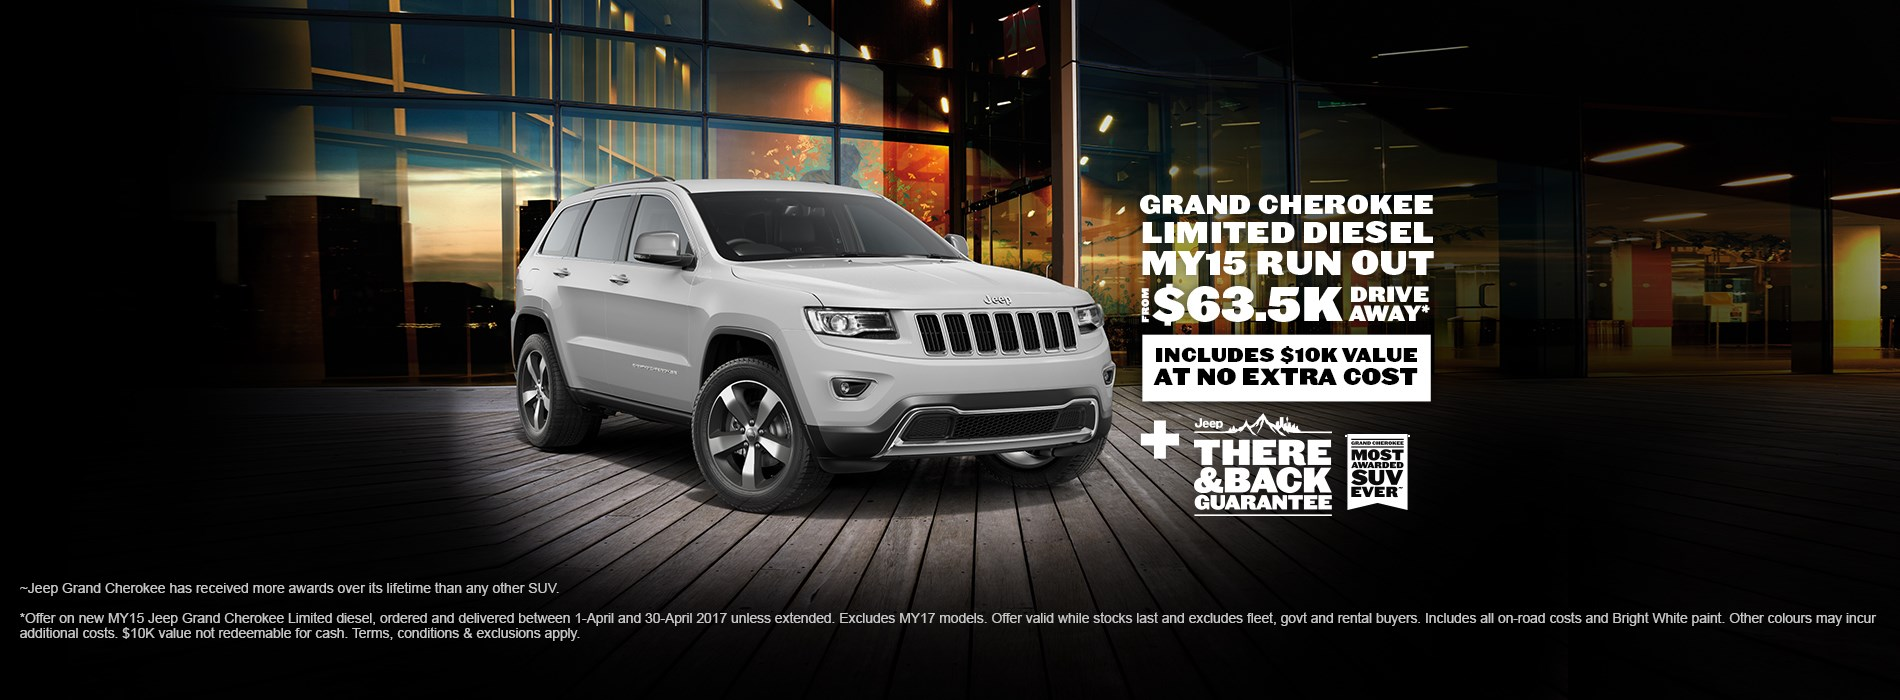 Jeep Grand Cherokee Limited Diesel $63.5K Drive Away Offer